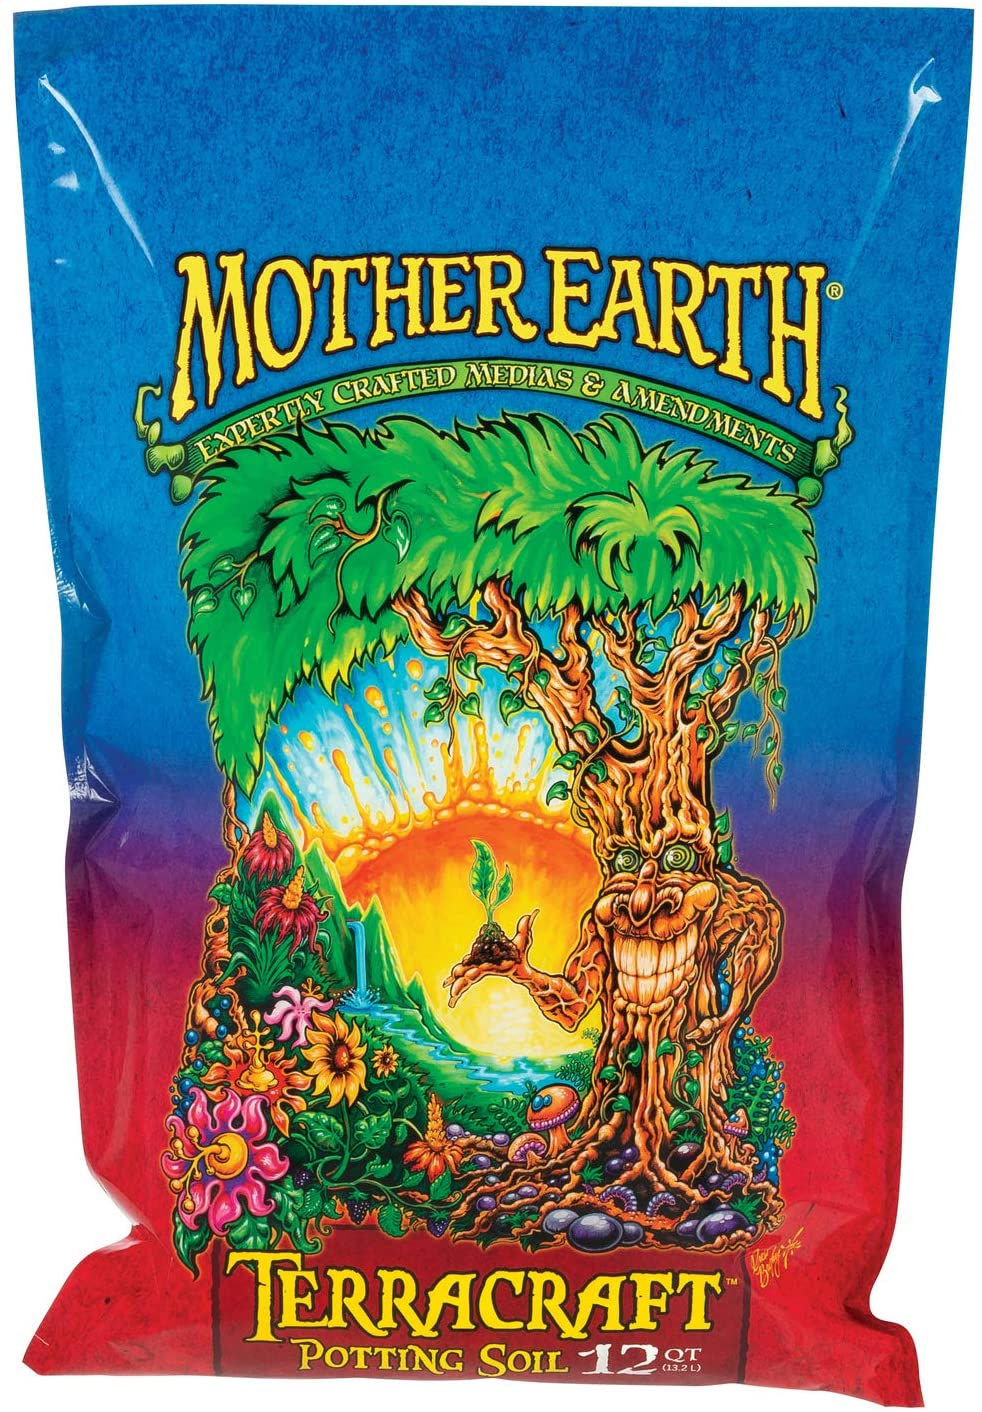 Mother Earth Products HGC714902 Terracraft Potting Soil, All Purpose Potting Soil For All Plants, Flowers, Vegetables And Tomatoes, 12 Qt., Natural